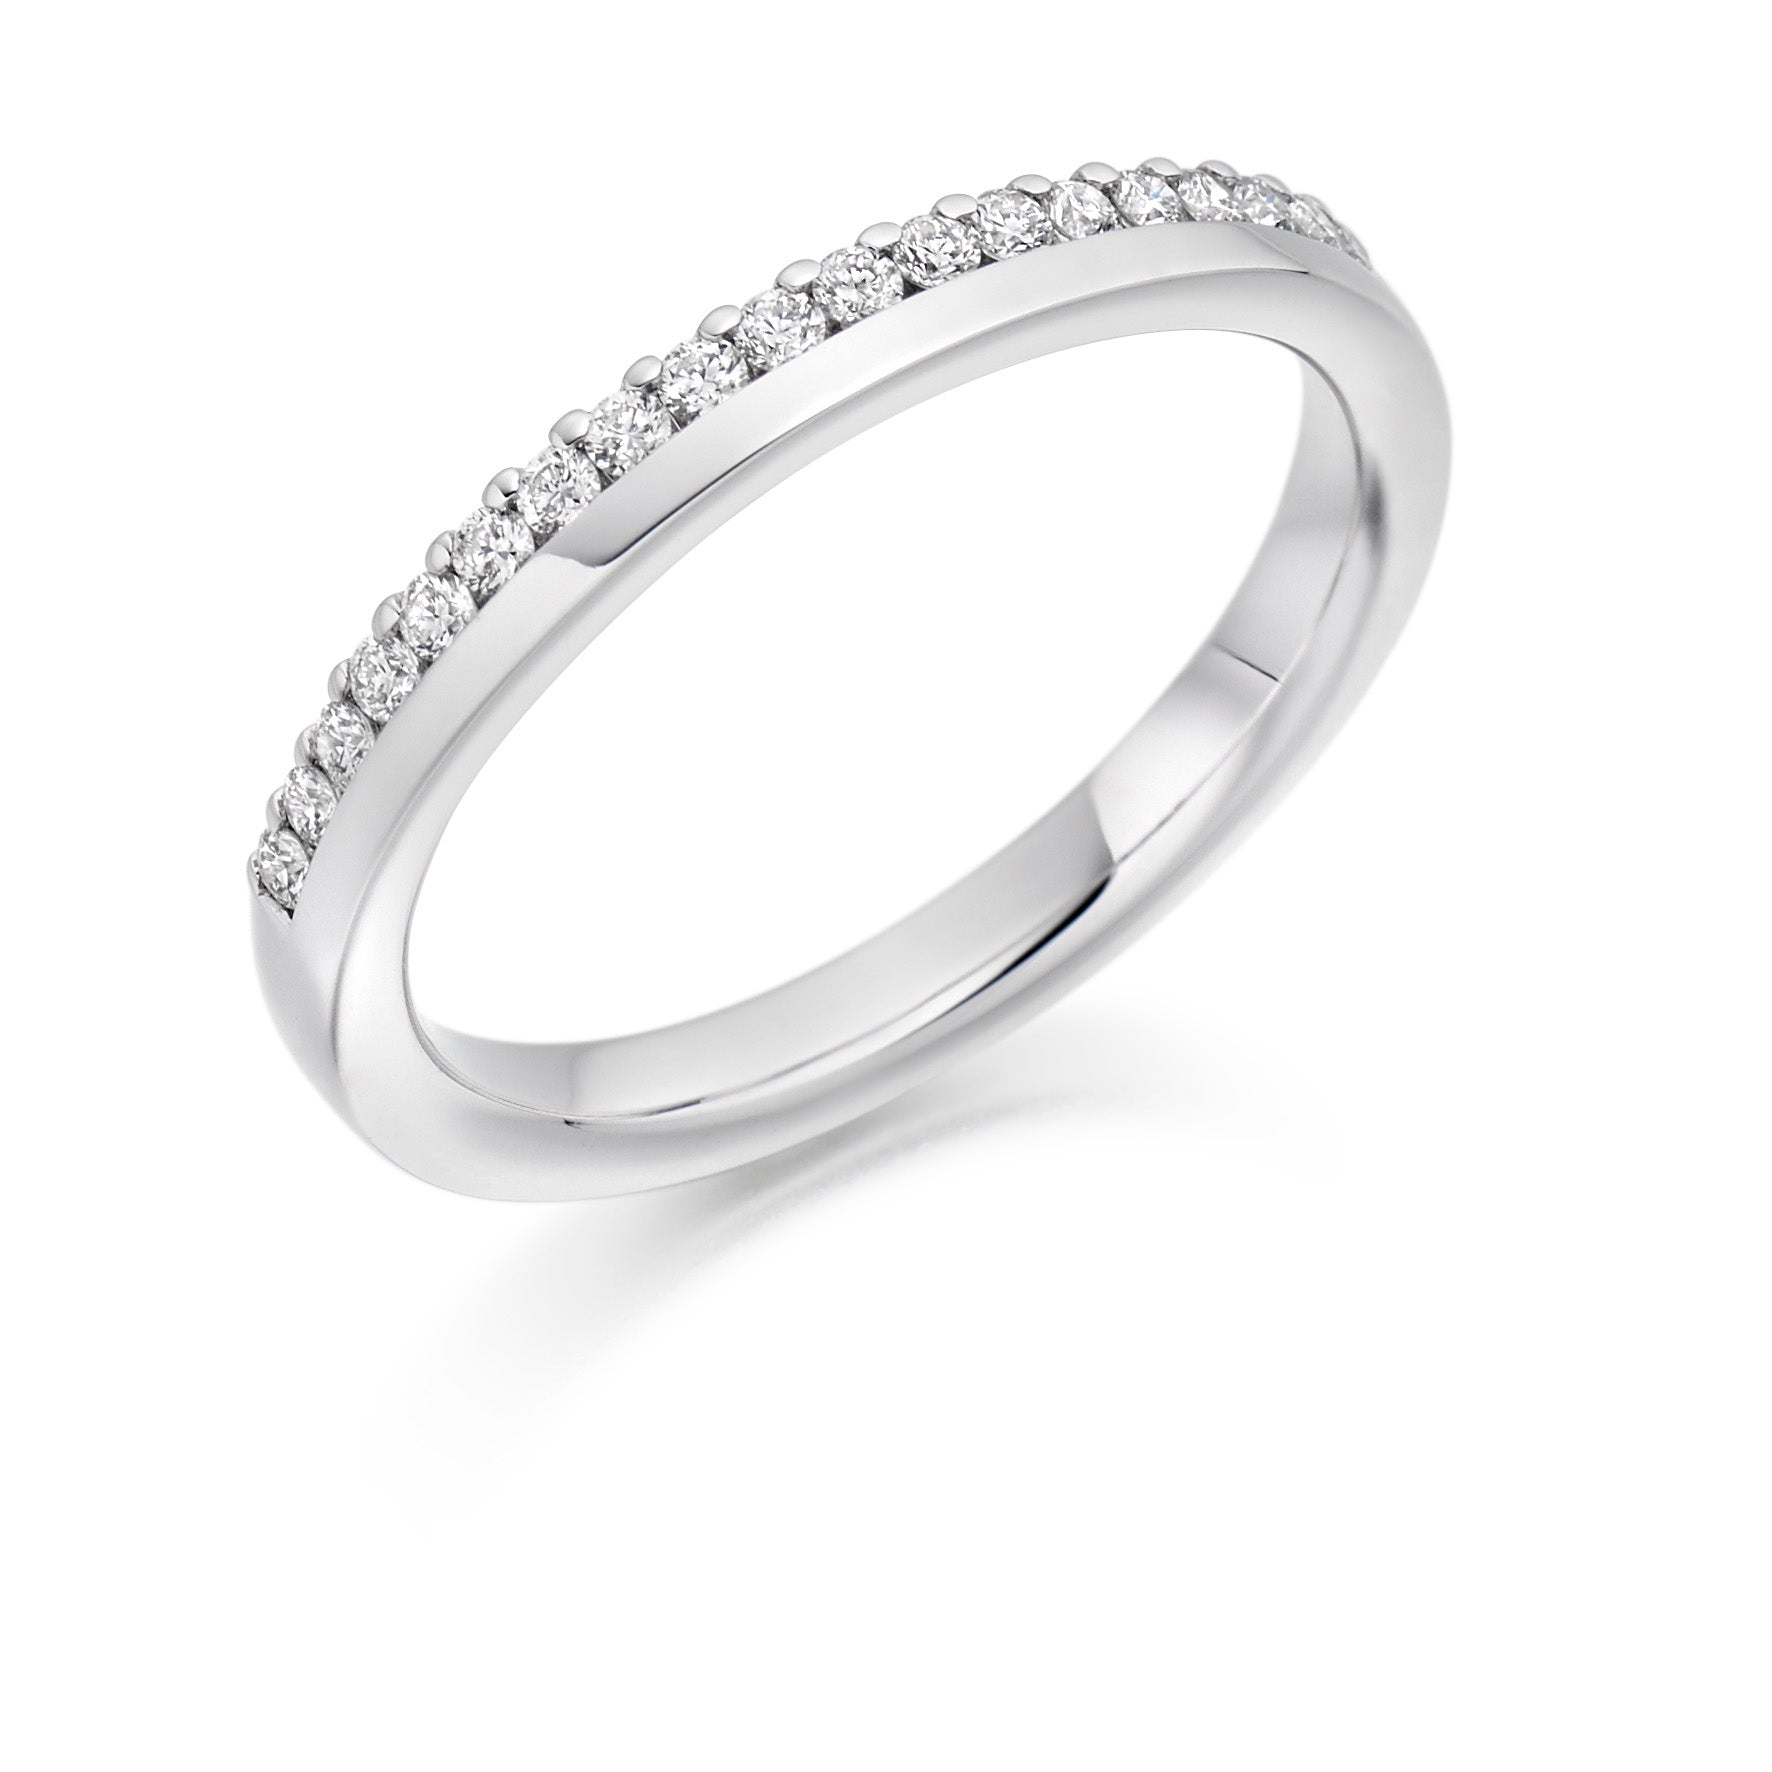 0.22ct Round Brilliant Cut Diamonds Offset Wedding Ring - (Home Try-On)